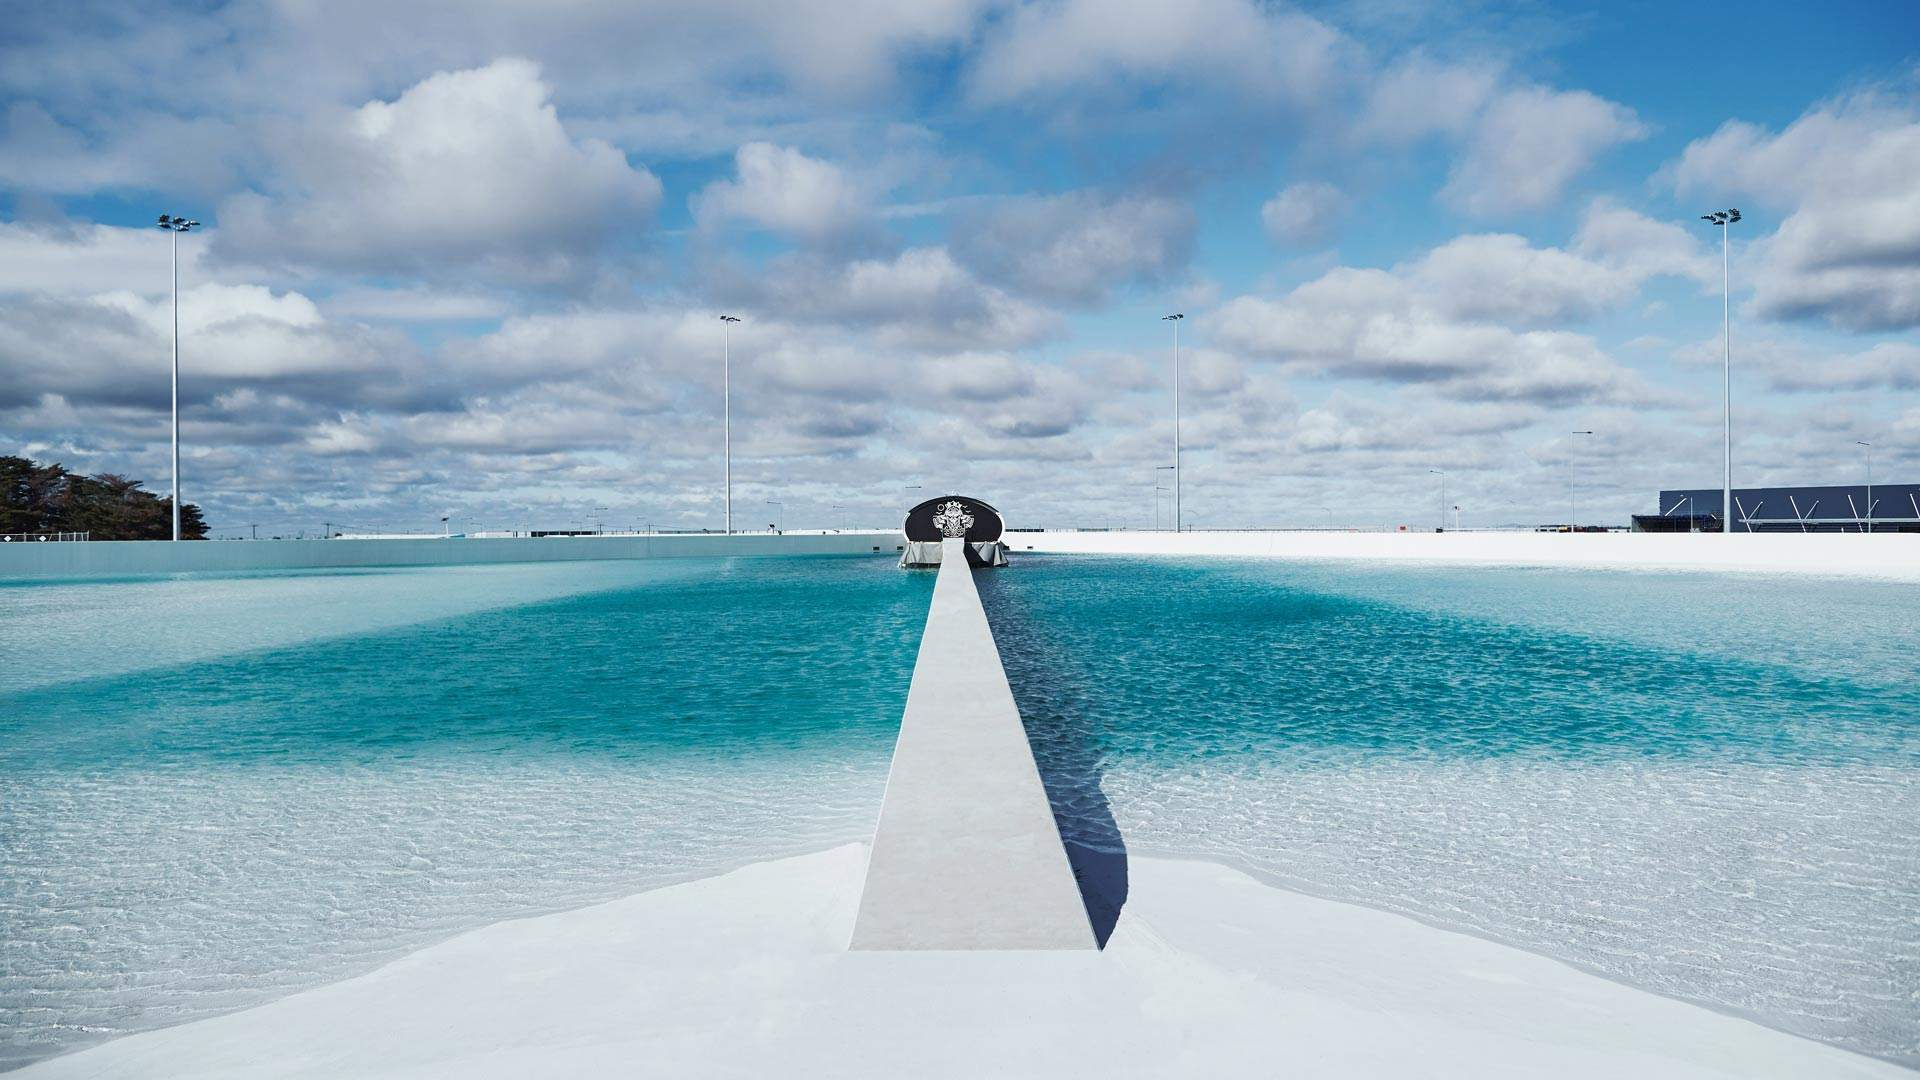 Melbourne's Long-Awaited Surf Park Urbnsurf Is Finally Filled with Water